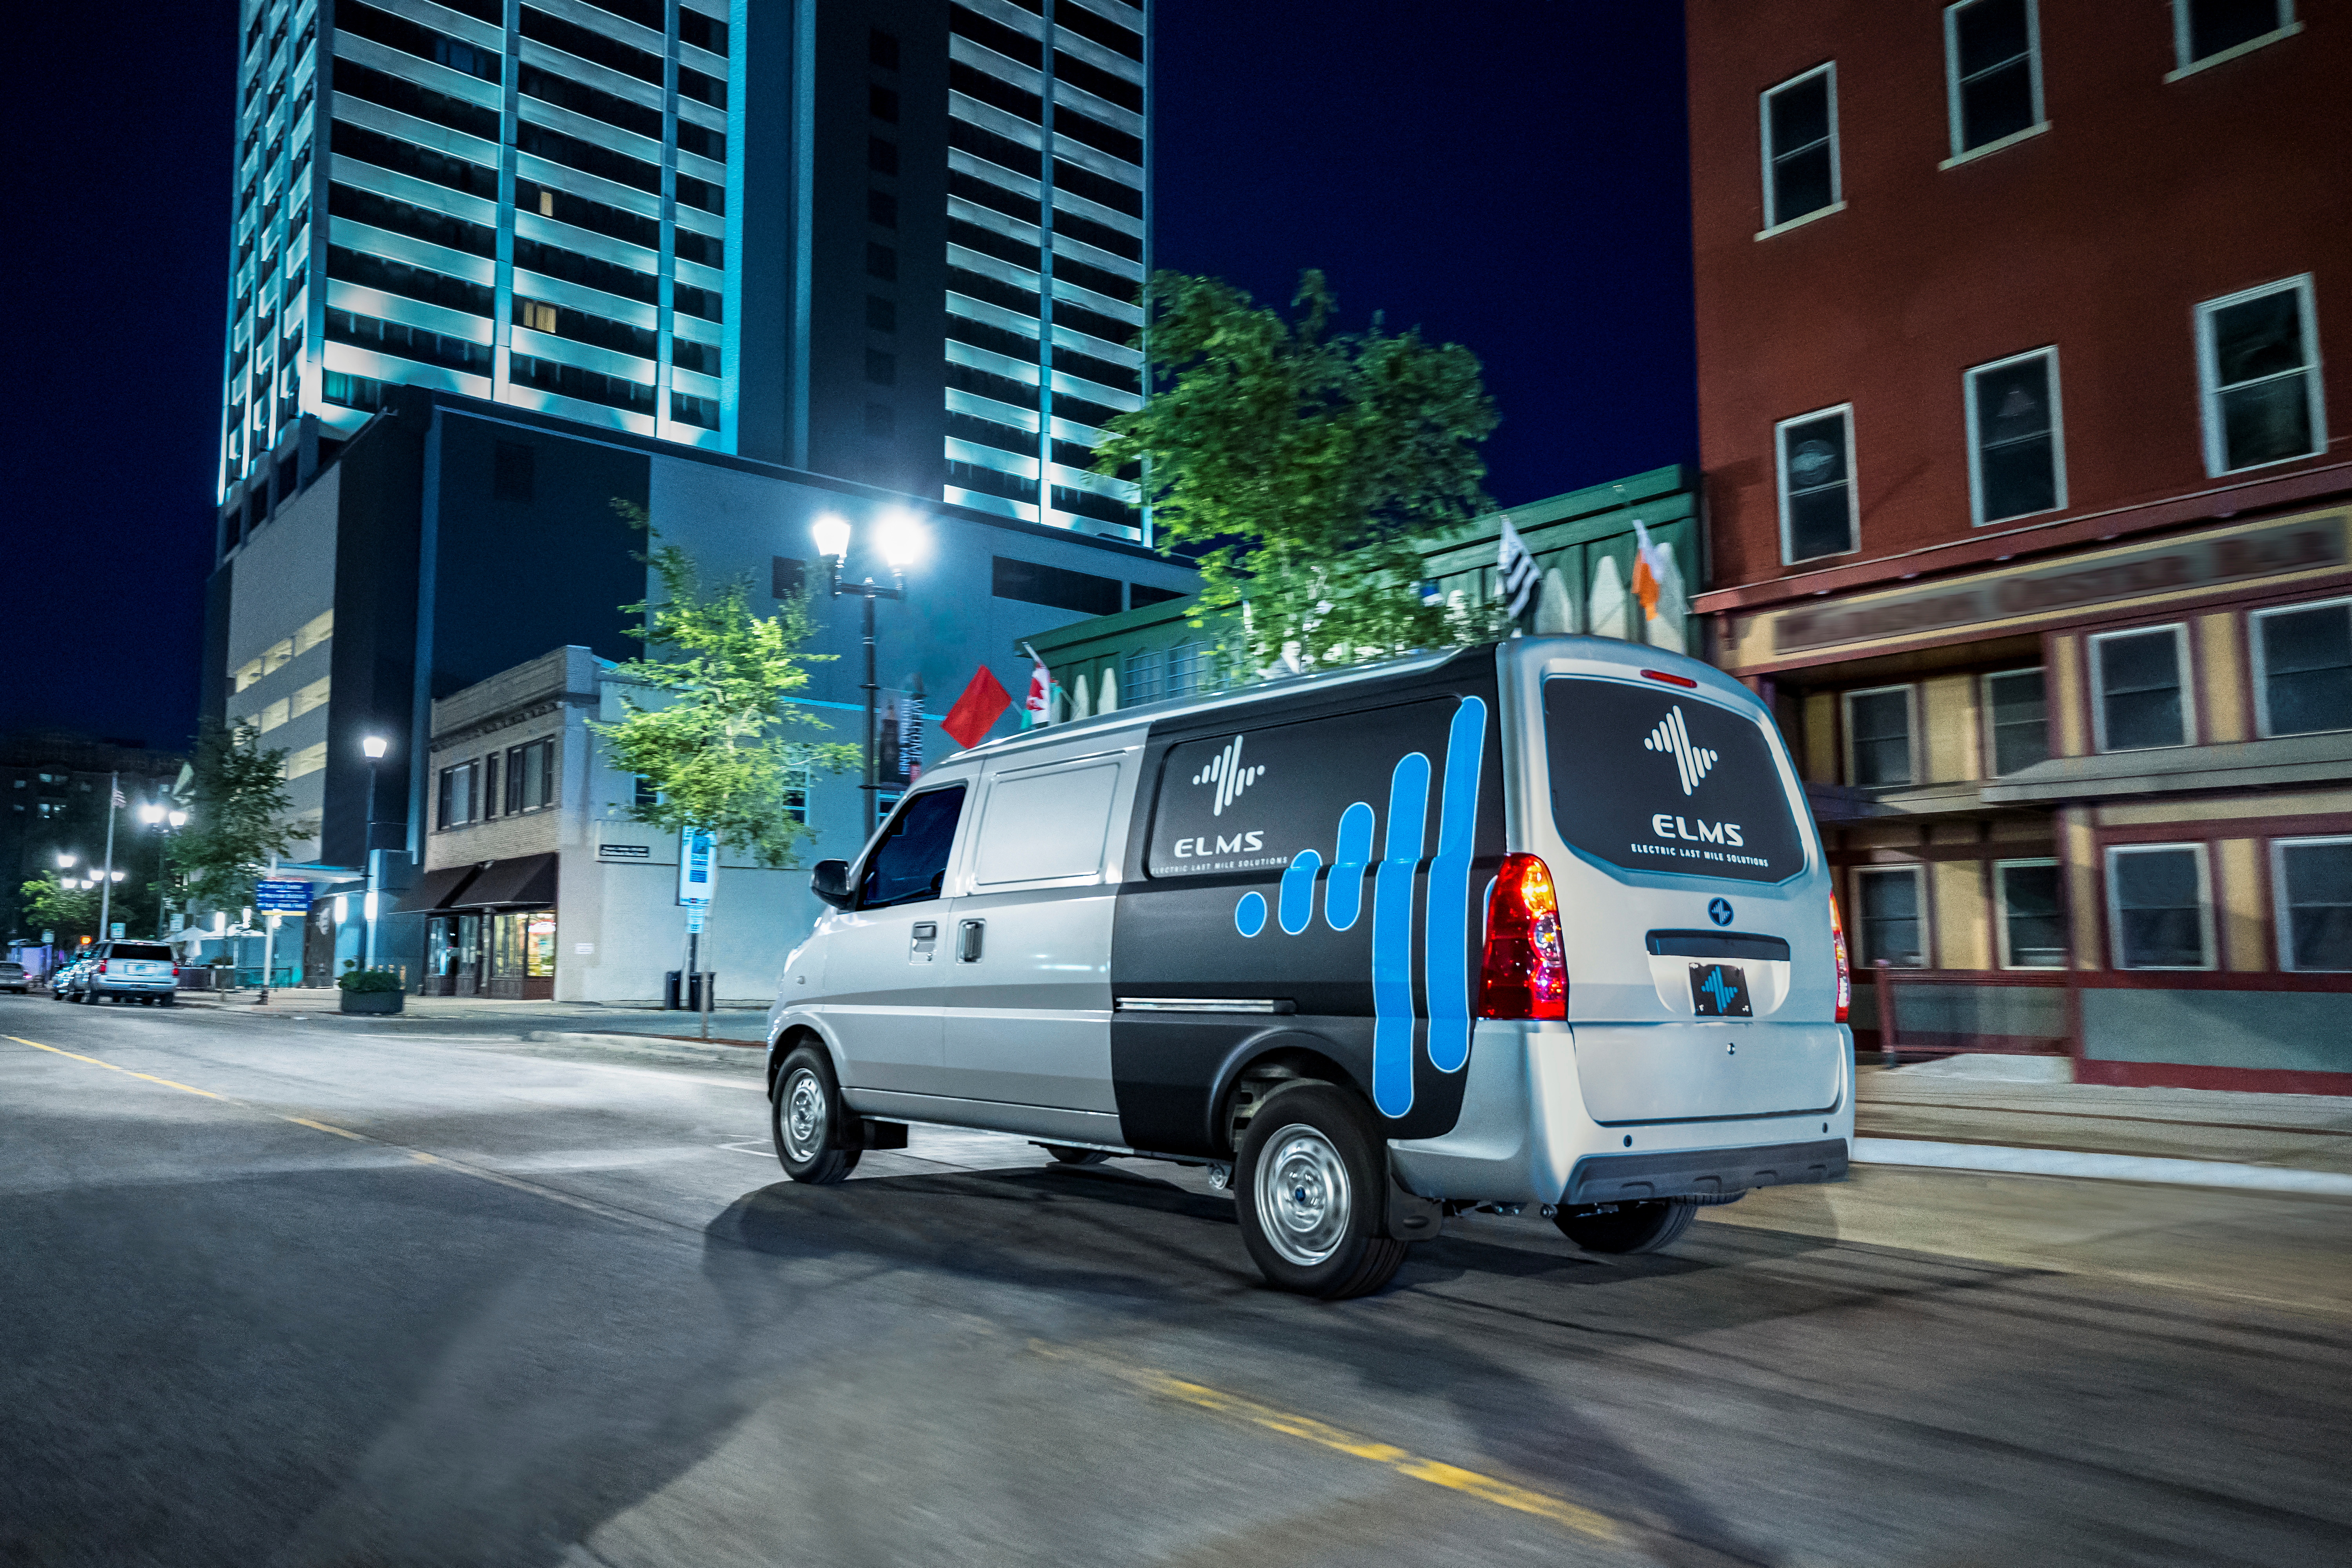 An Urban Delivery vehicle manufactured by ELMS (Electric Last Mile Solutions) is seen in an undated photograph in South Bend, Indiana, U.S. ELMS/Handout via REUTERS.